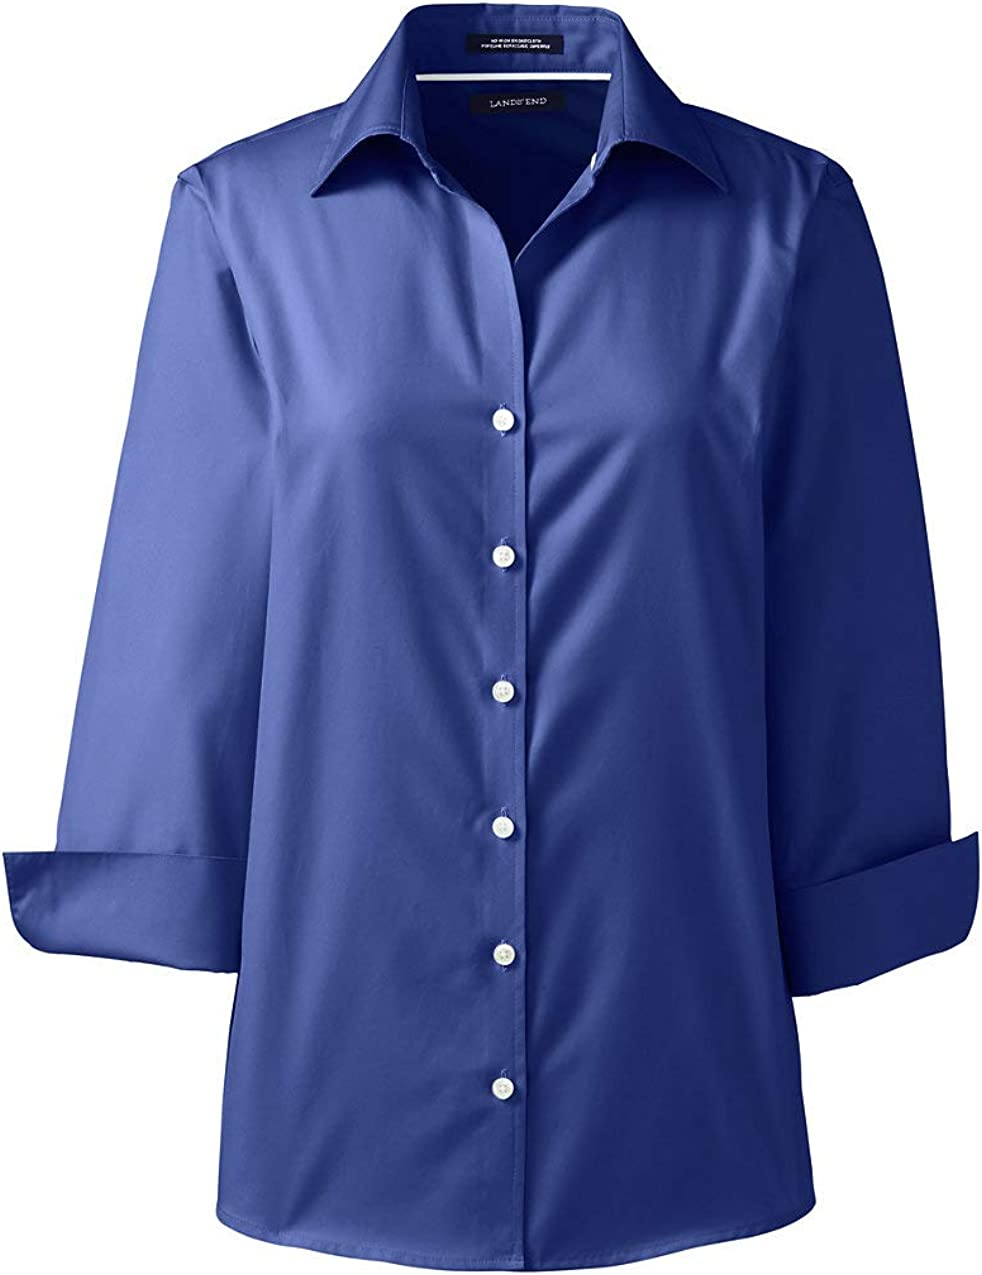 Lands' Spasm price End Women's 3 4 Broadcloth Spring new work one after another Shirt Sleeve No Iron